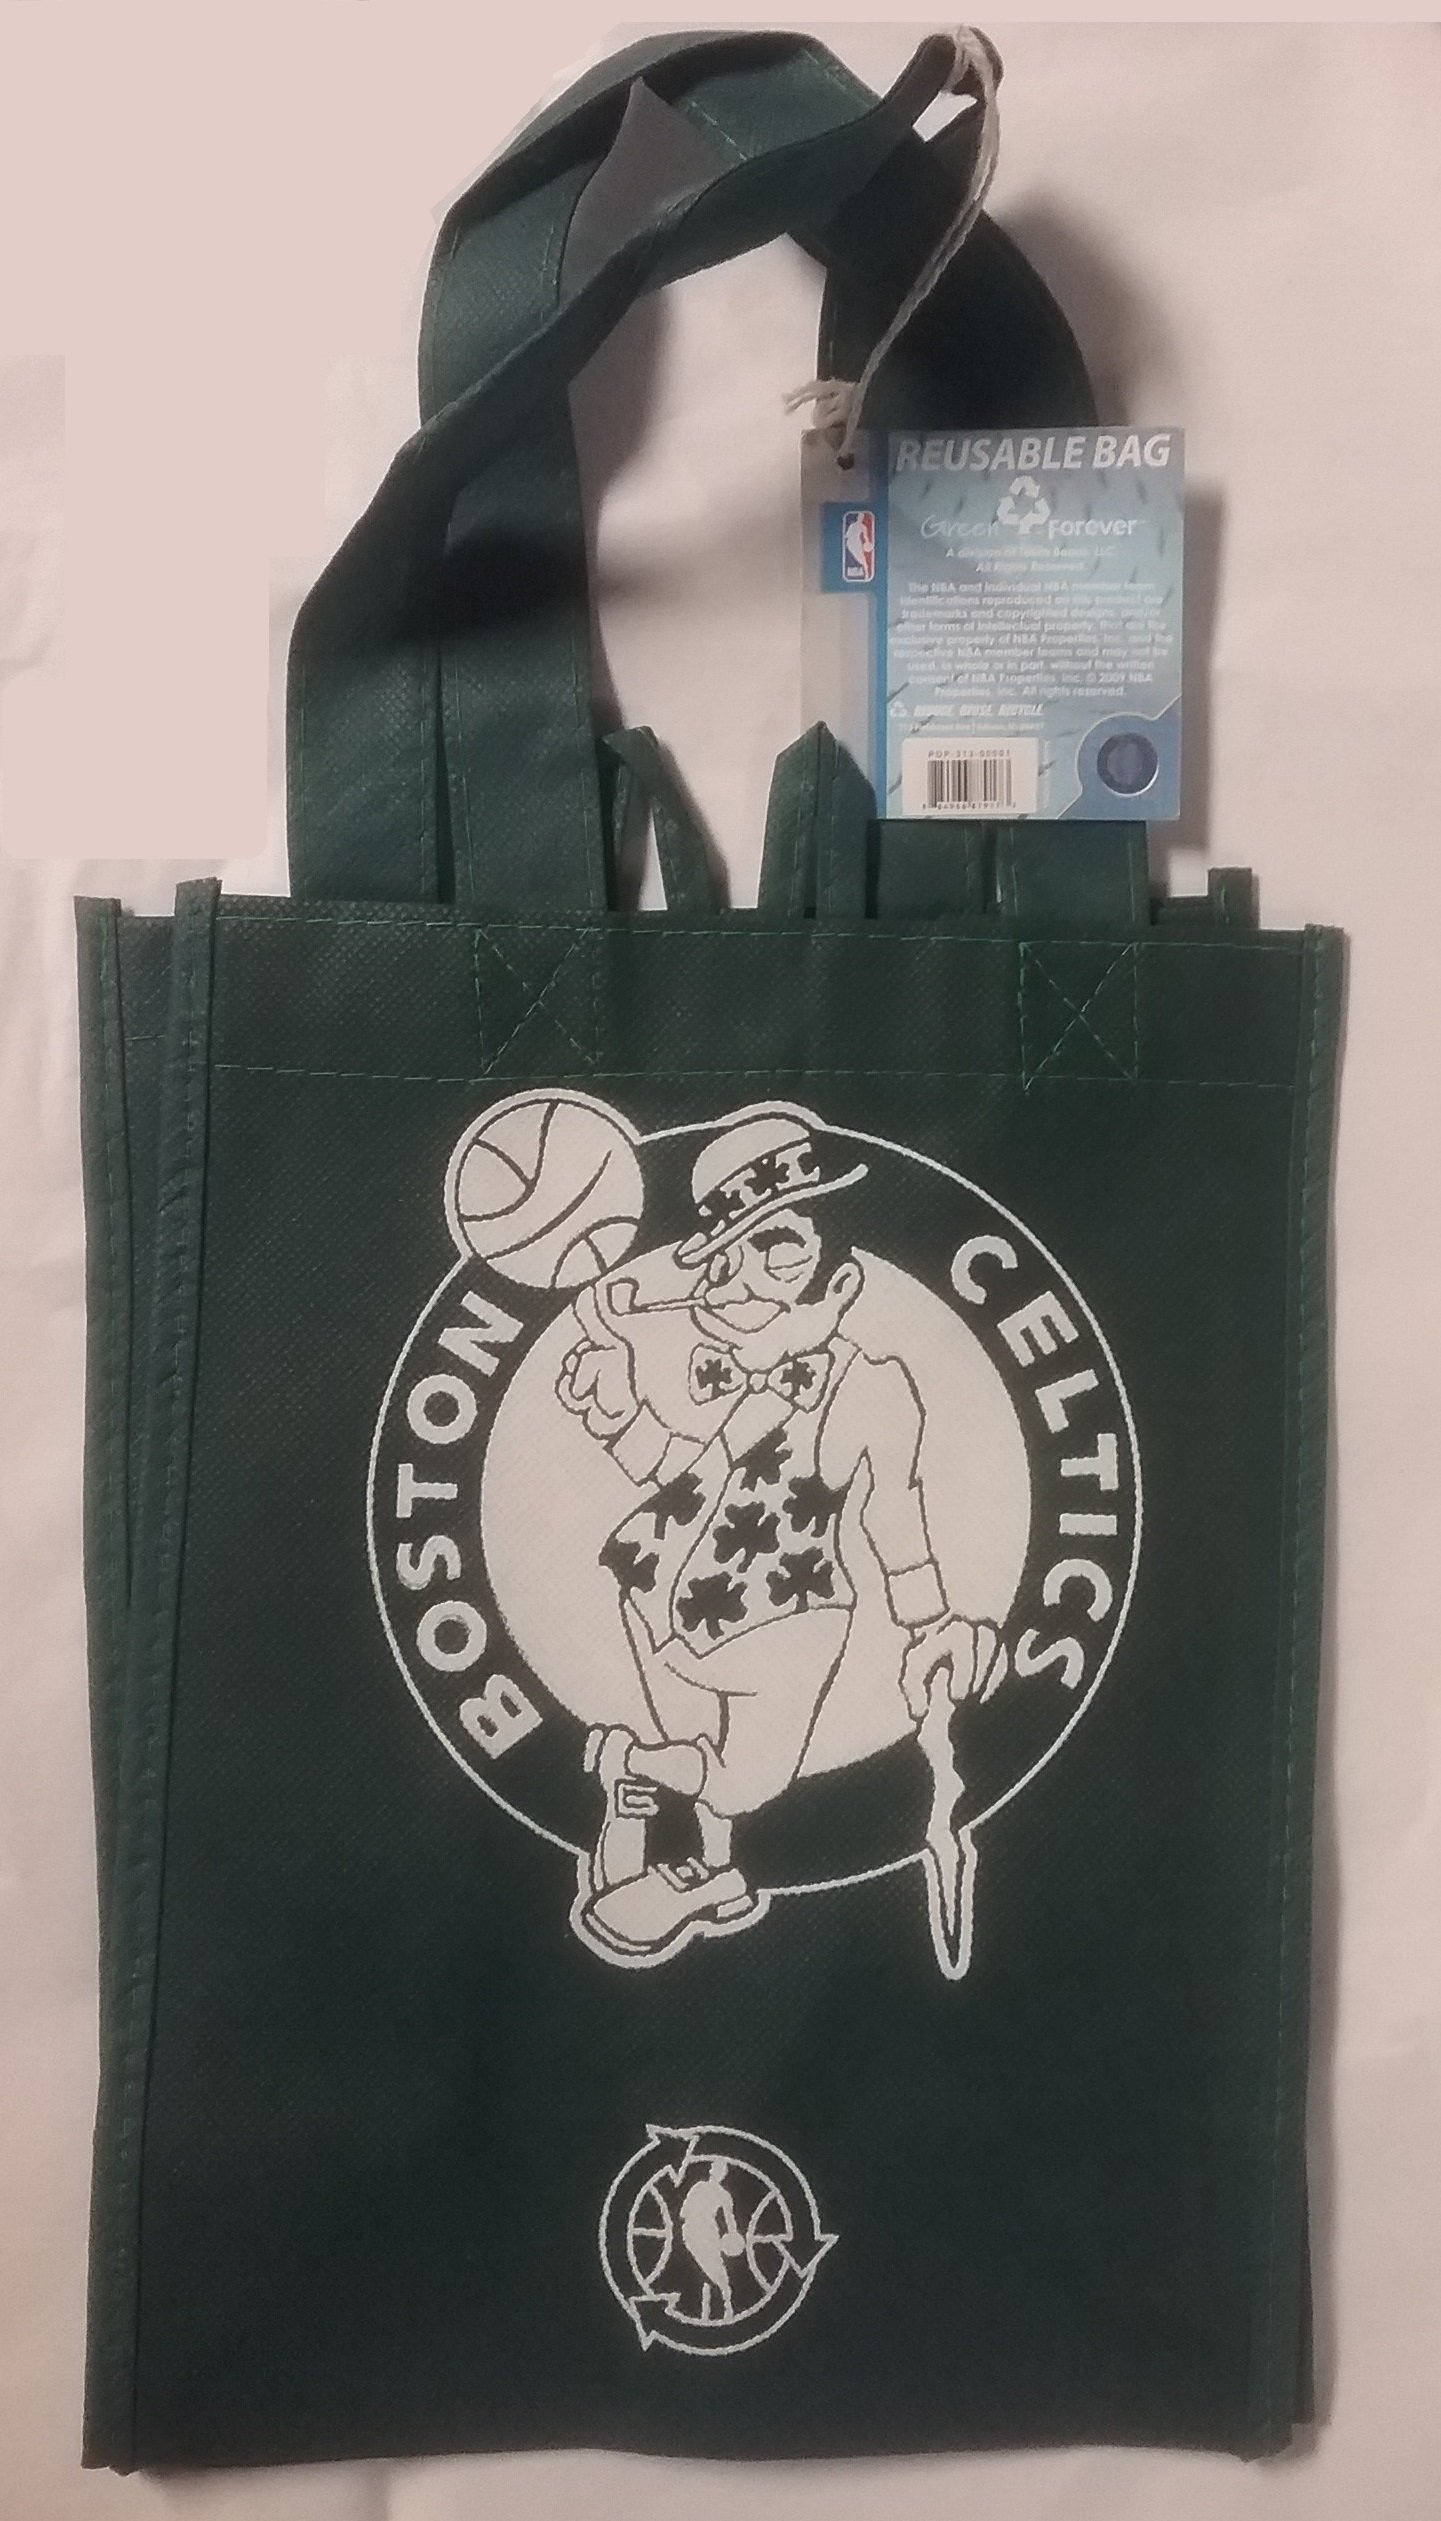 FOCO NBA Boston Celtics Printed Non-Woven Polypropylene Reusable Grocery Tote Bag, Small, Green